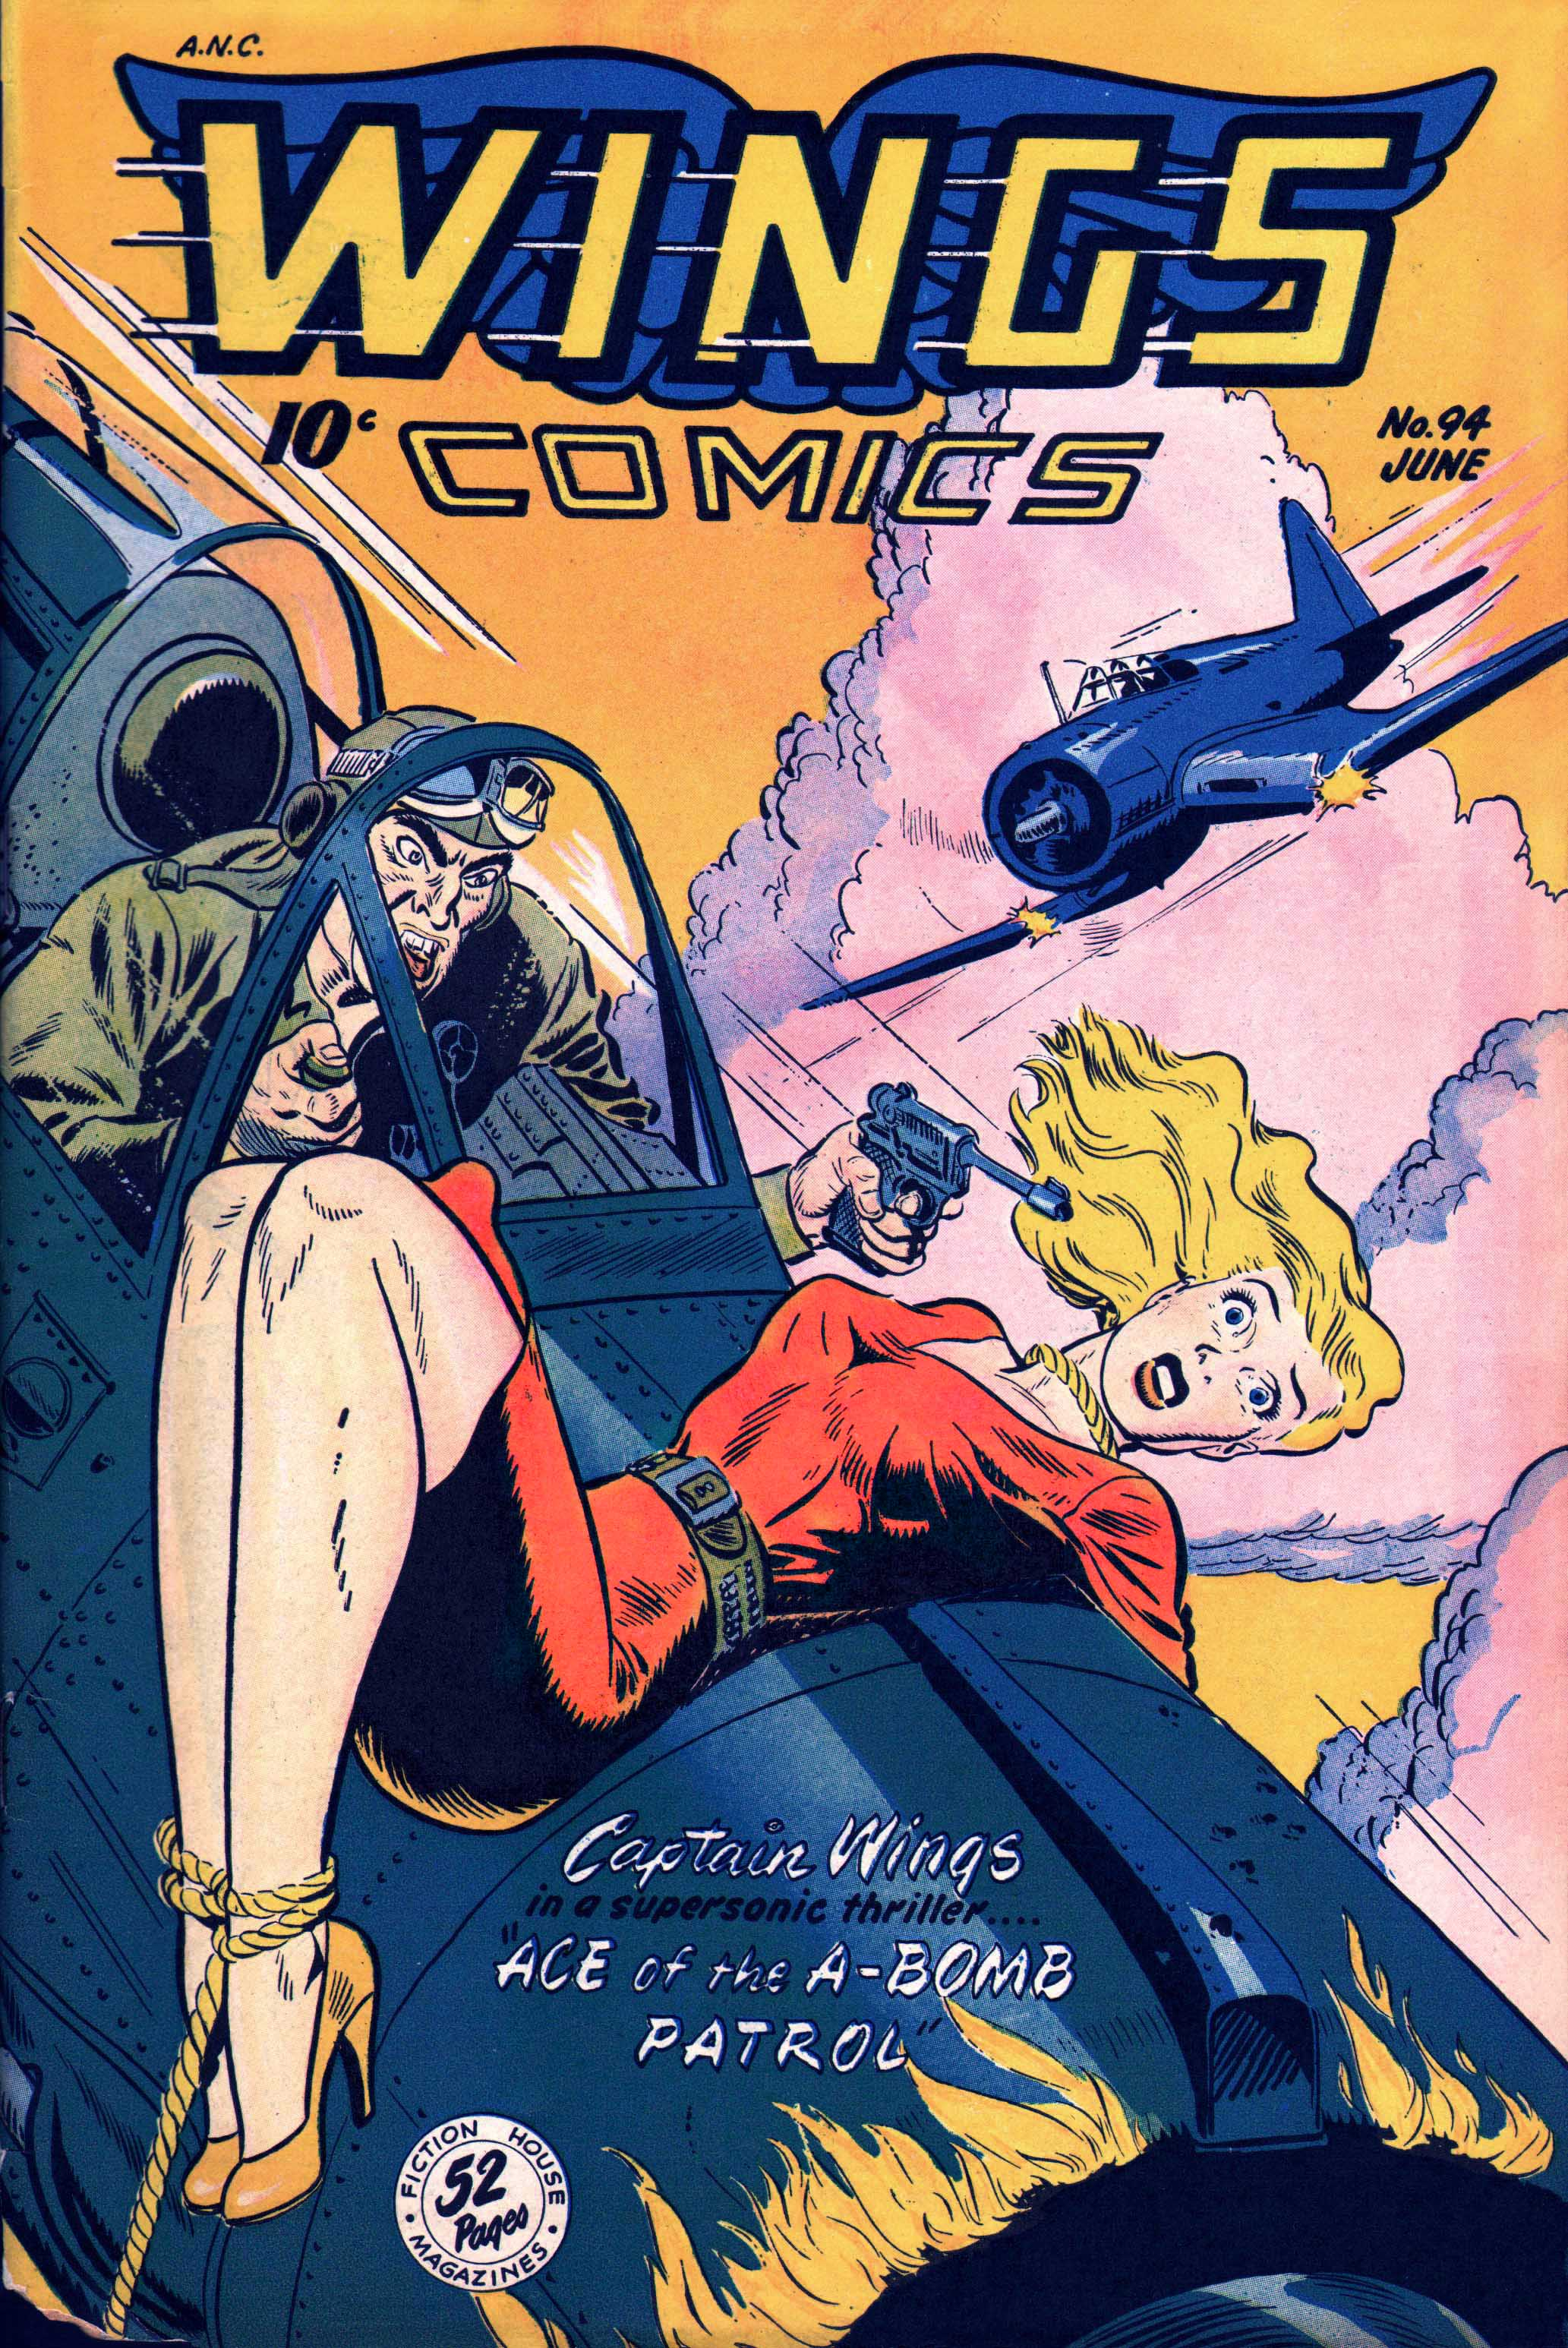 Wings Comics #94 by Fiction House